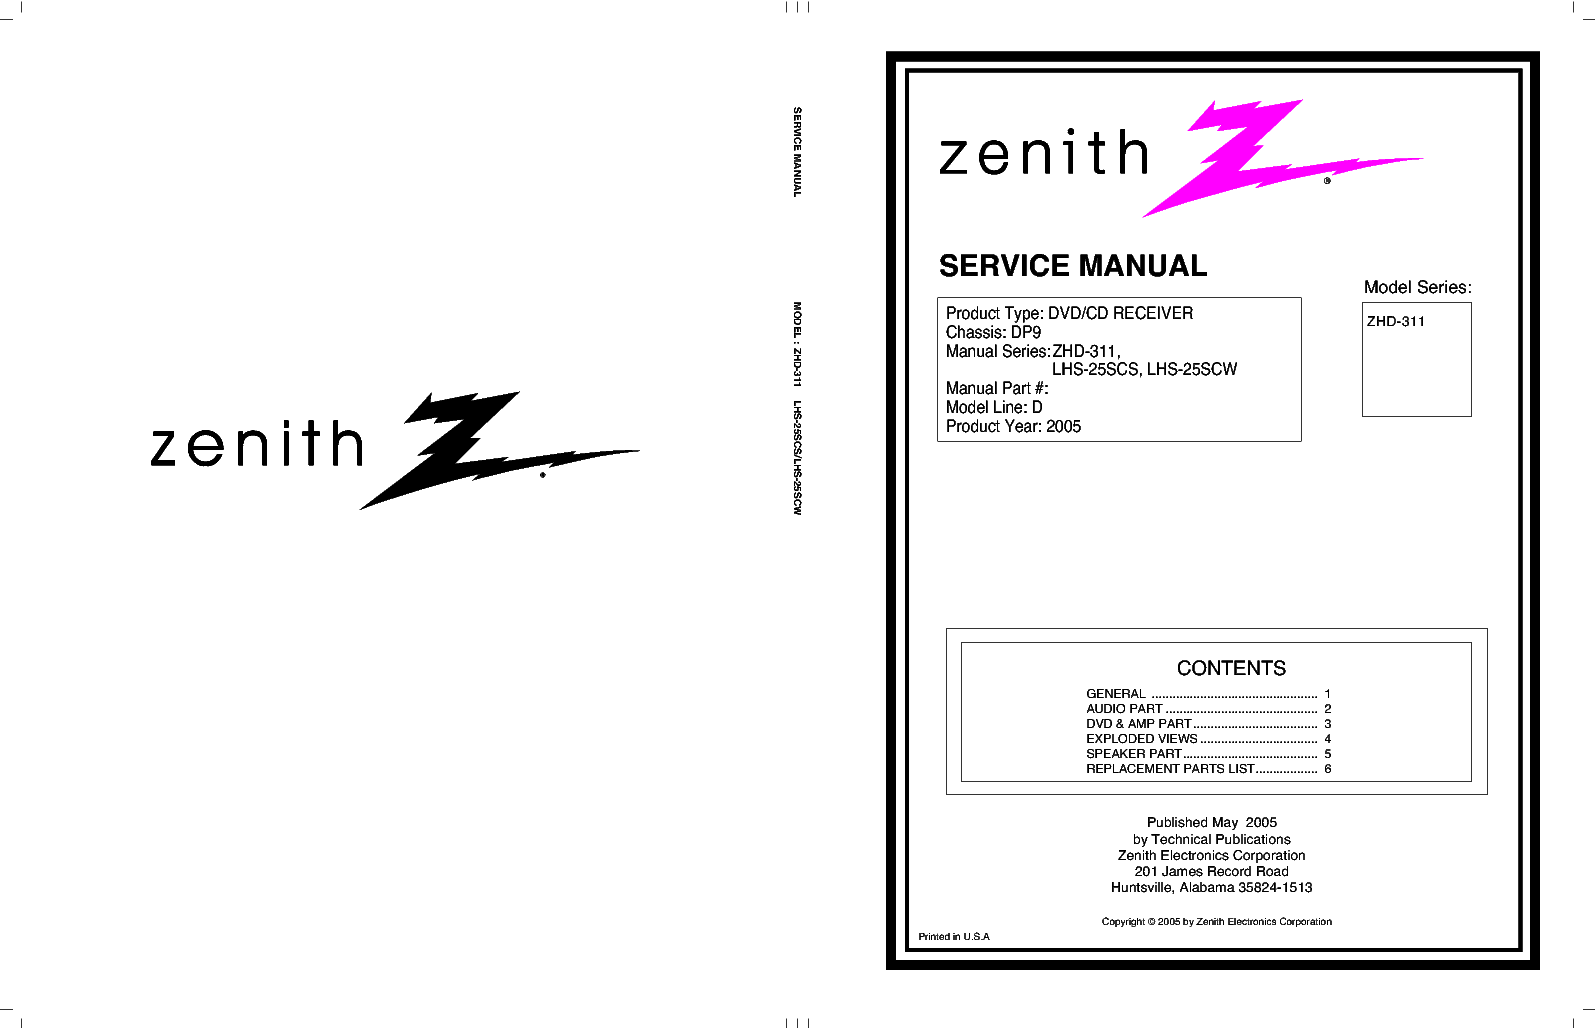 ZENITH DVD-VCR-PLAYER-ABV-341 Service Manual download